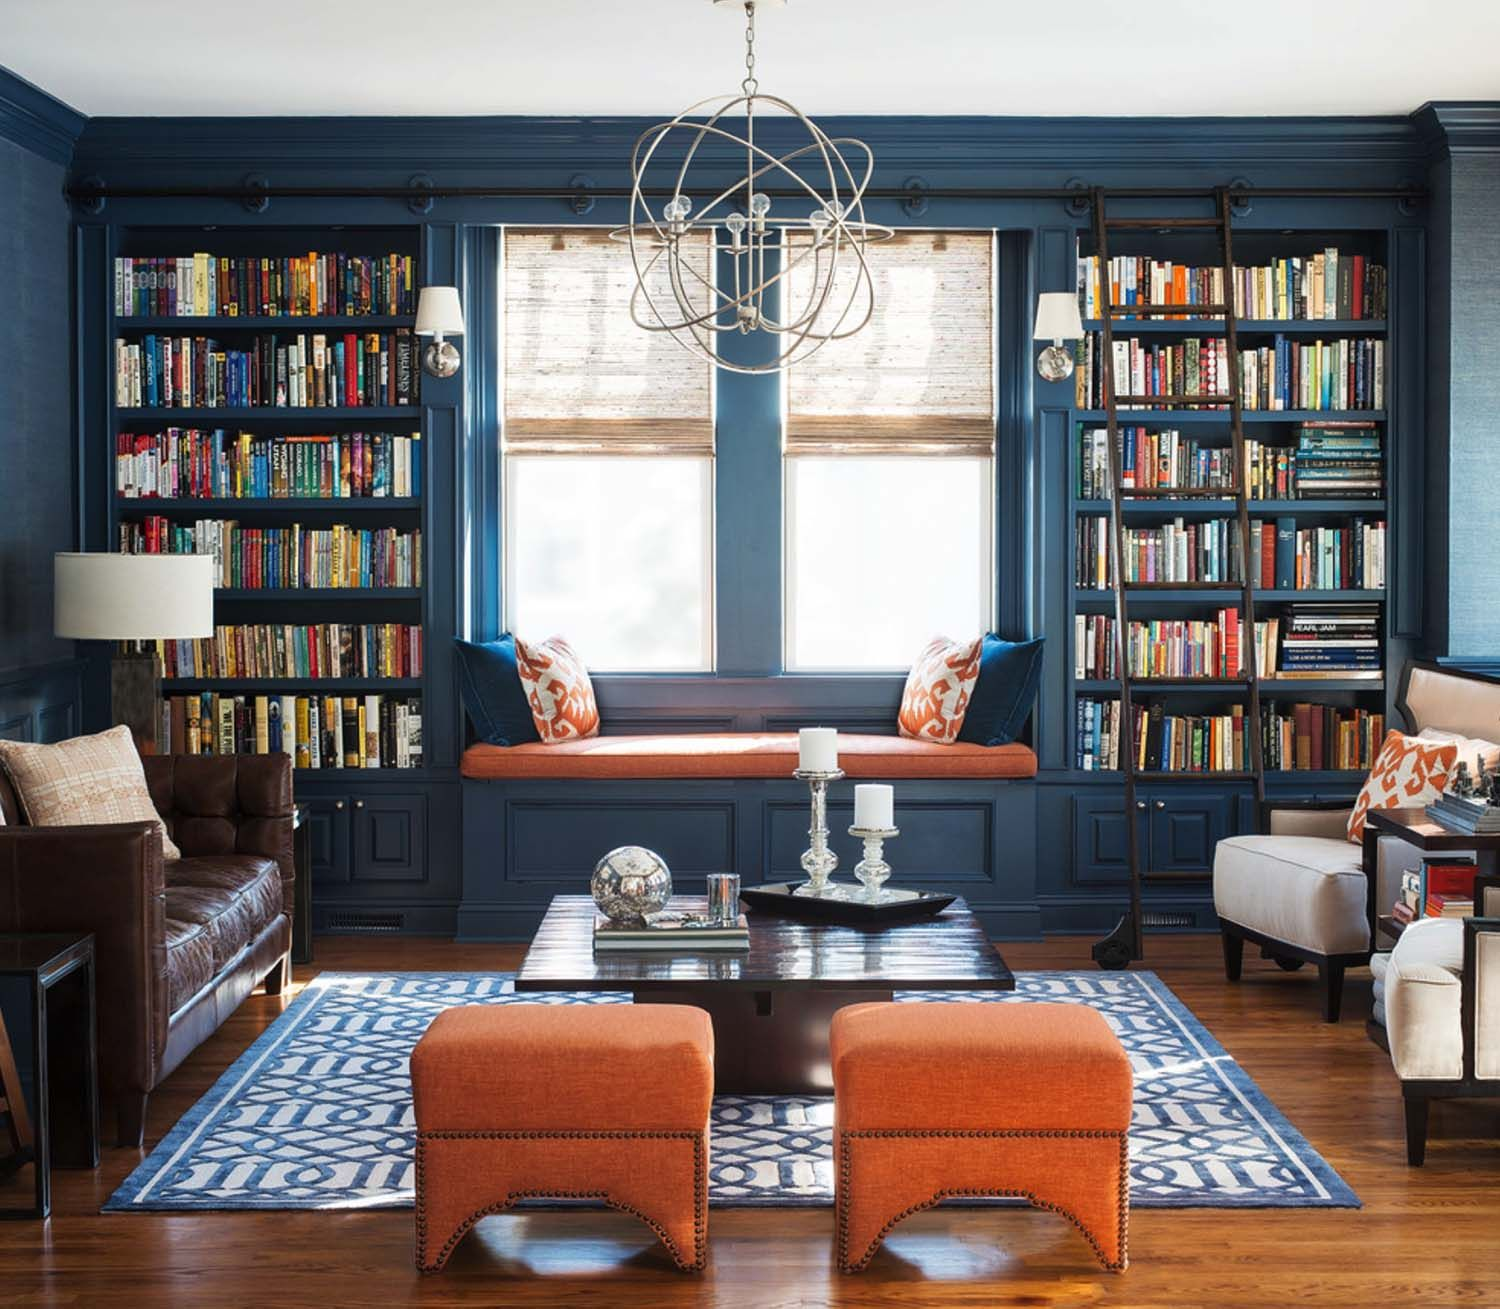 Home Design Ideas Book: 36 Fabulous Home Libraries Showcasing Window Seats